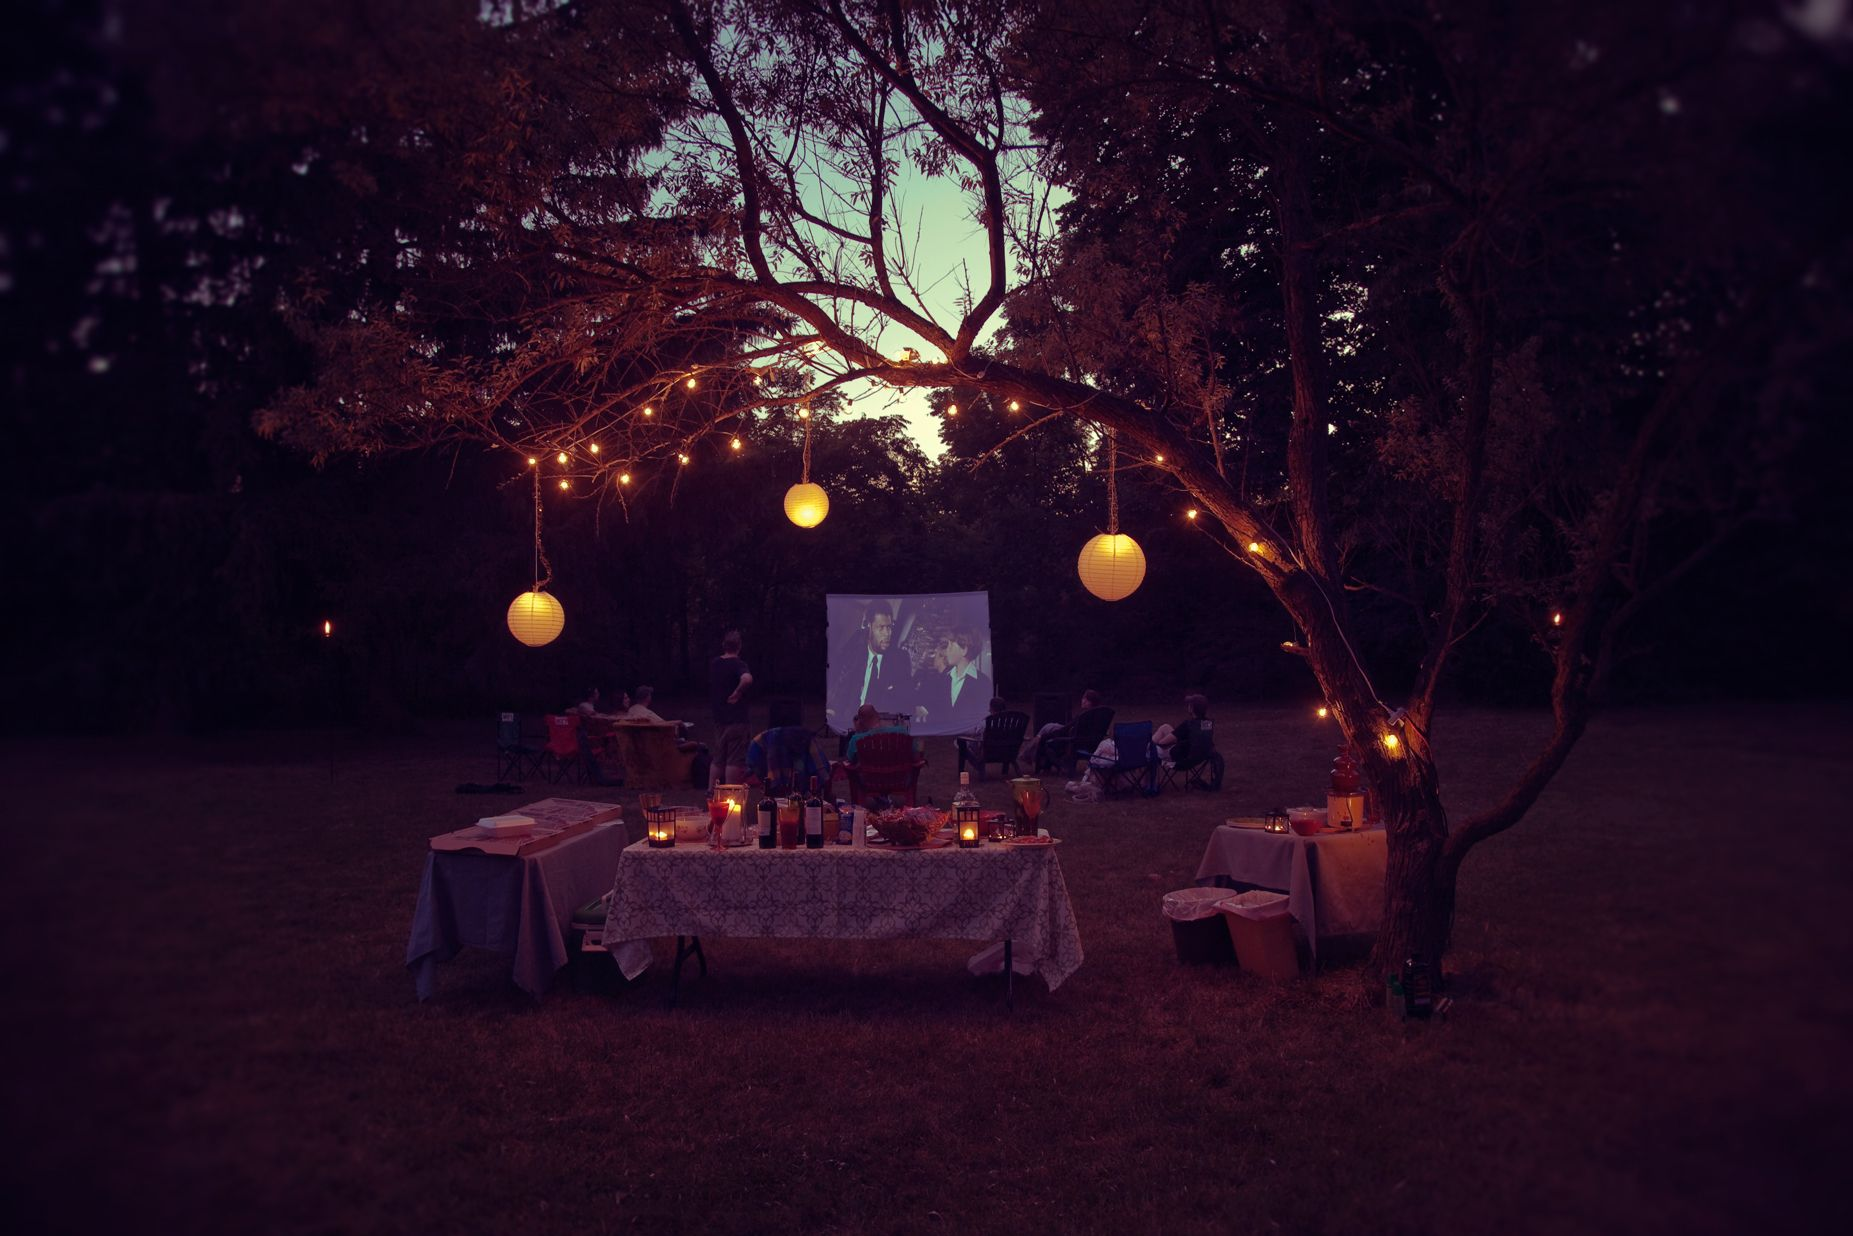 First Annual Outdoor Movie Night - July 2012.